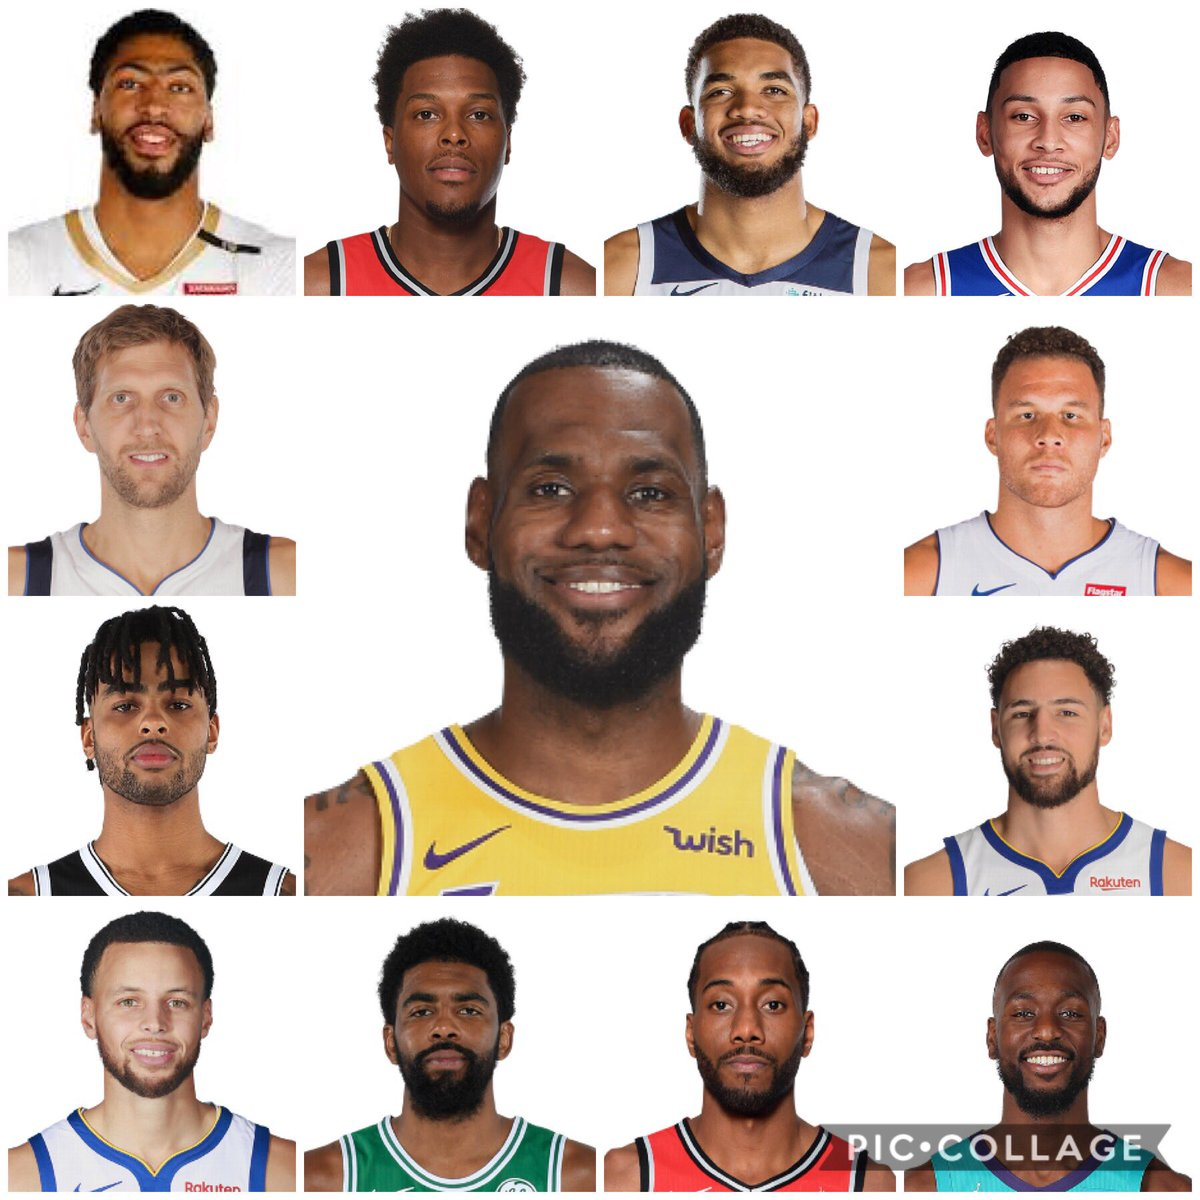 The 2nd annual Matt and Zack #NBAAllStardraft results. Who had the better draft @mbang41 as #TeamLeBron or @ZackLaux as #TeamGiannis  Full podcast https://soundcloud.com/user-819002967/mattzack-show … #nba #NBATwitter #NBAAllstar2019 @KingJames @Giannis_An34 @NBAonTNT